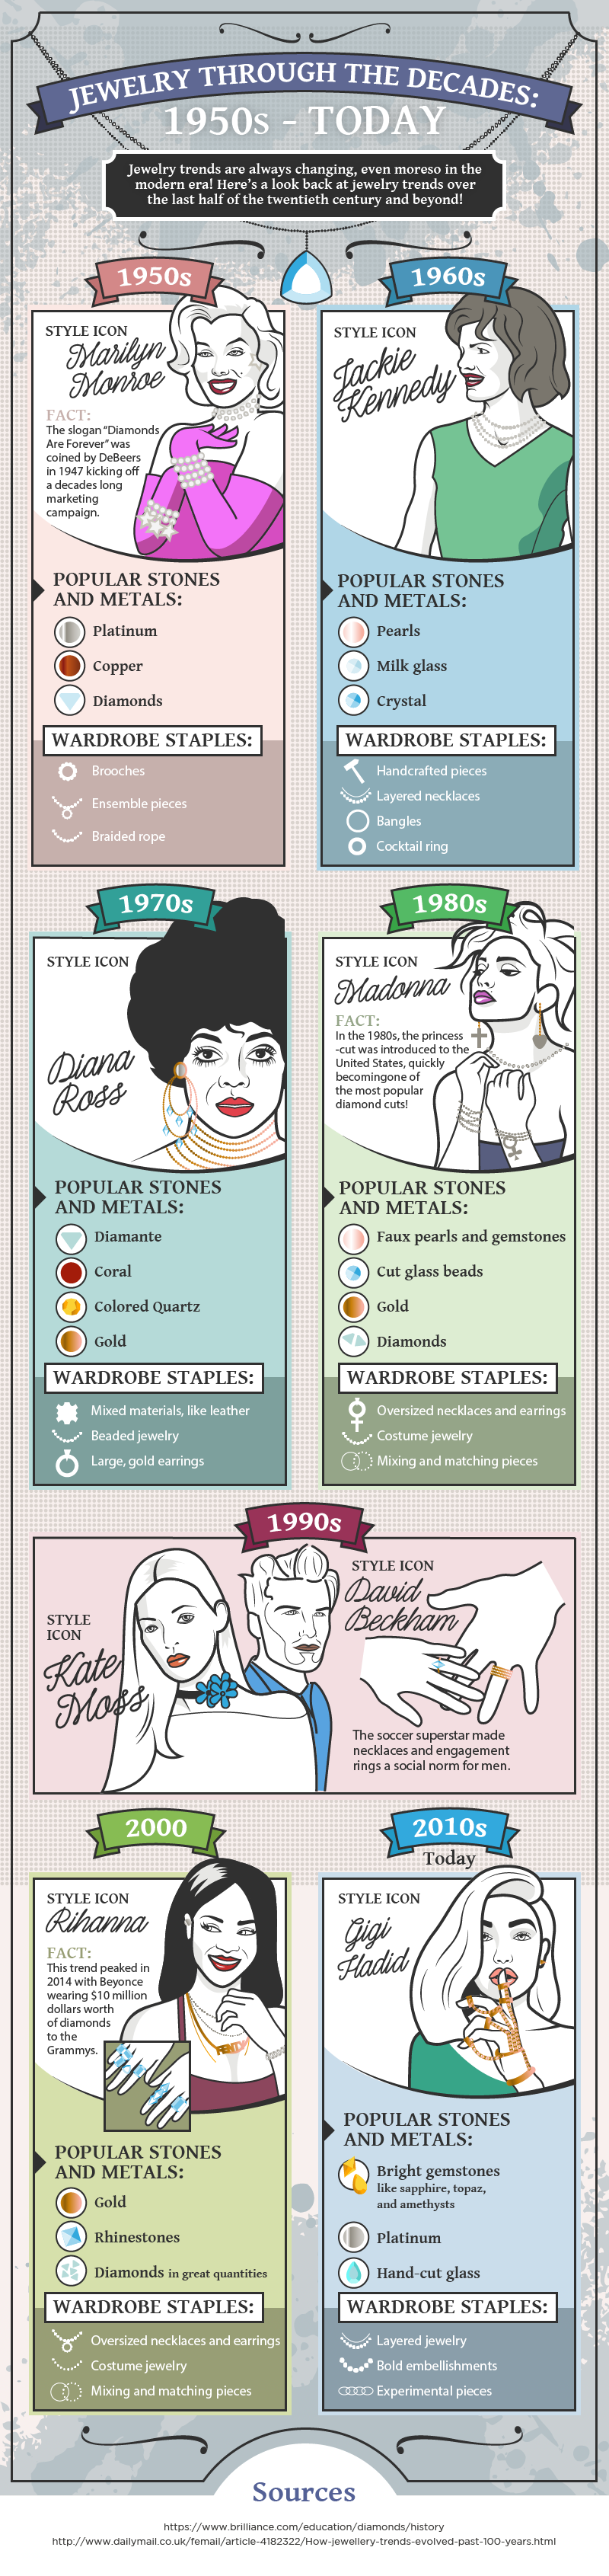 Jewelry through the Decades infographic